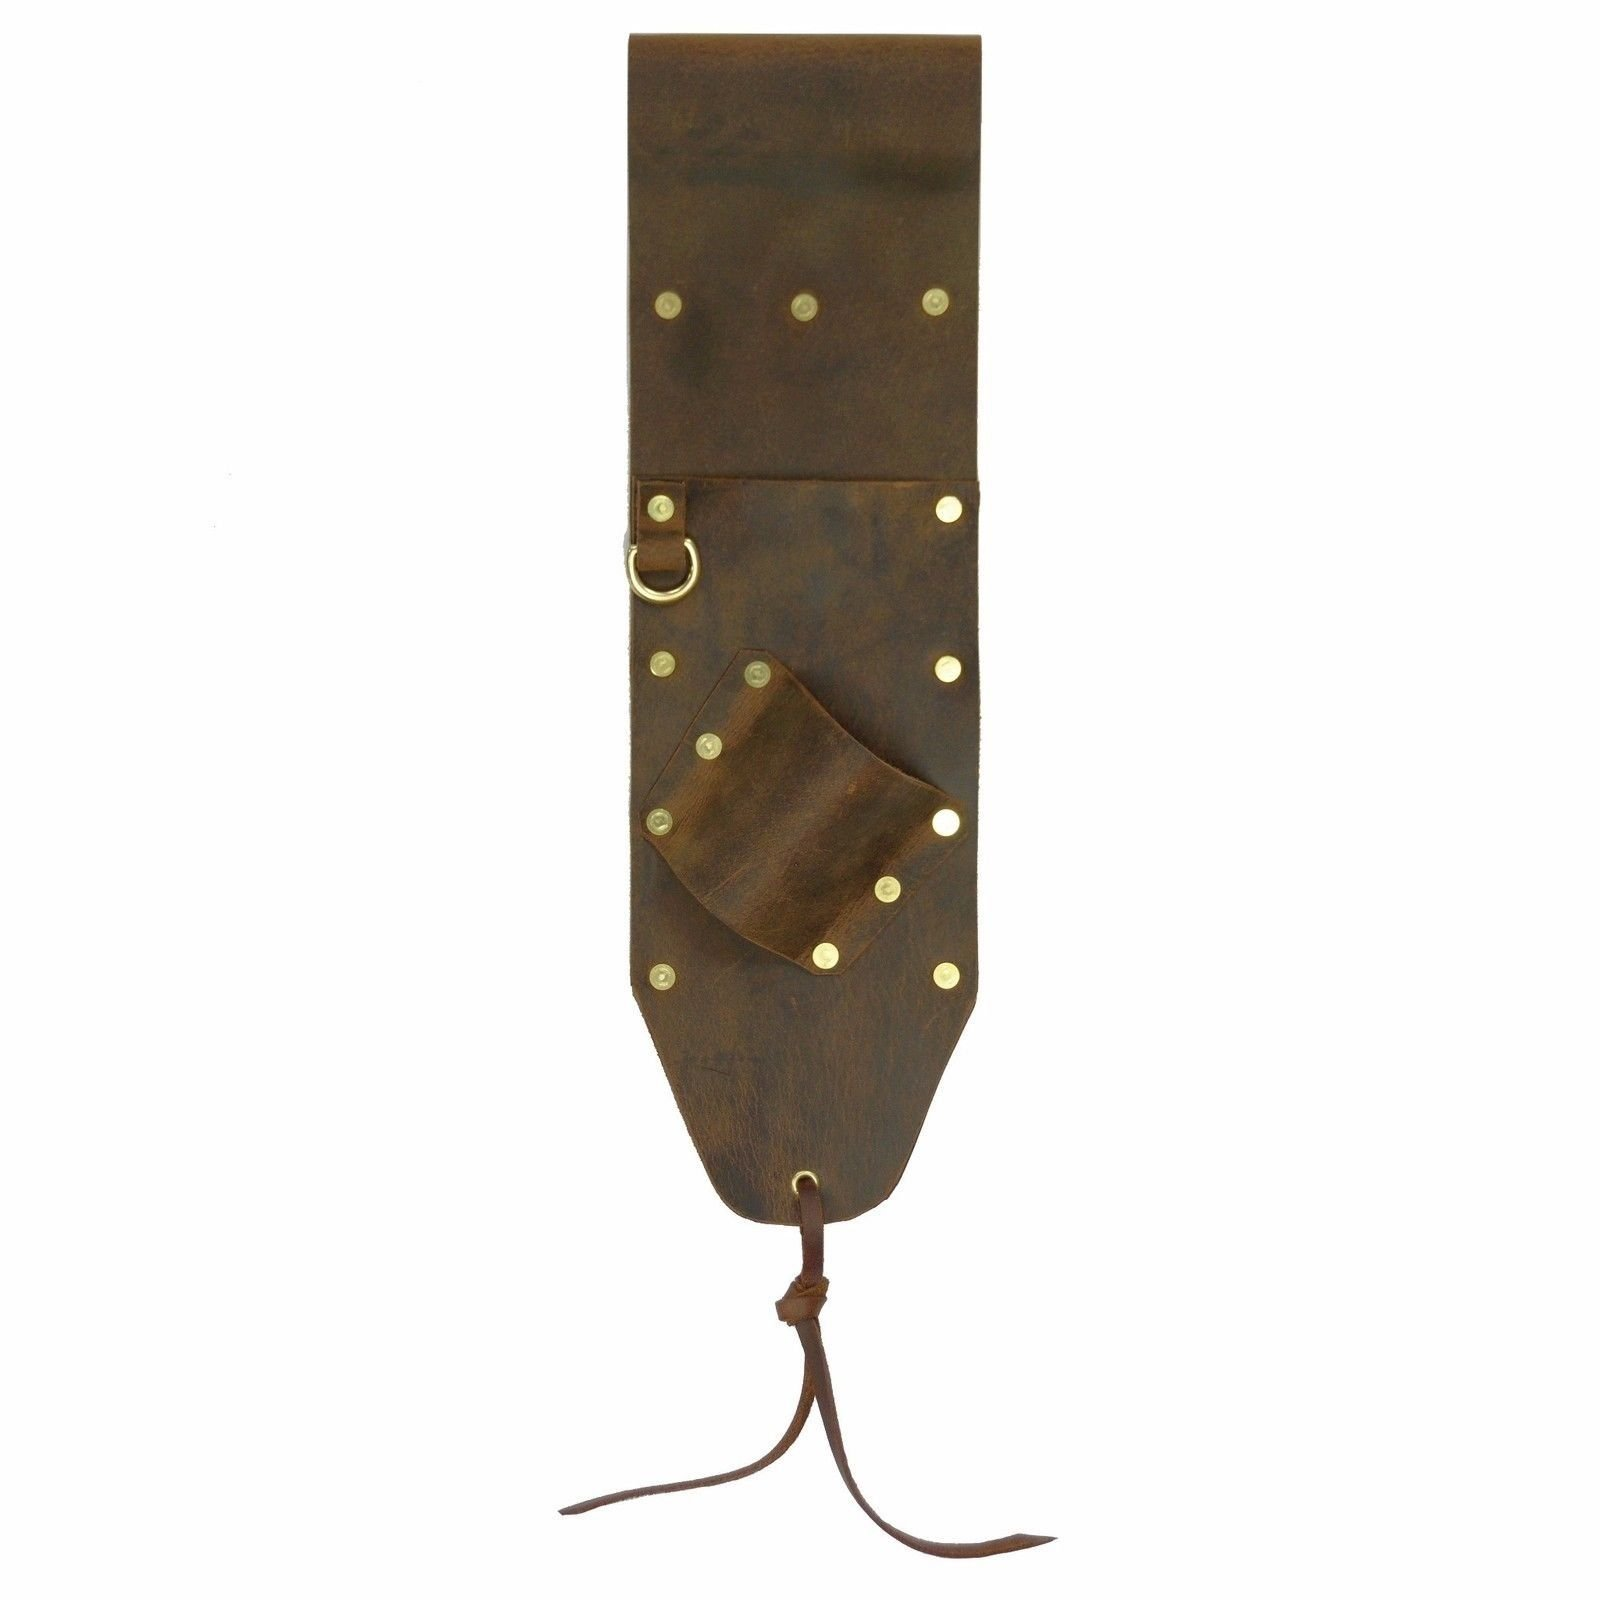 Brown Leather Sheath for PinPointer and Digging Tool Right Sided